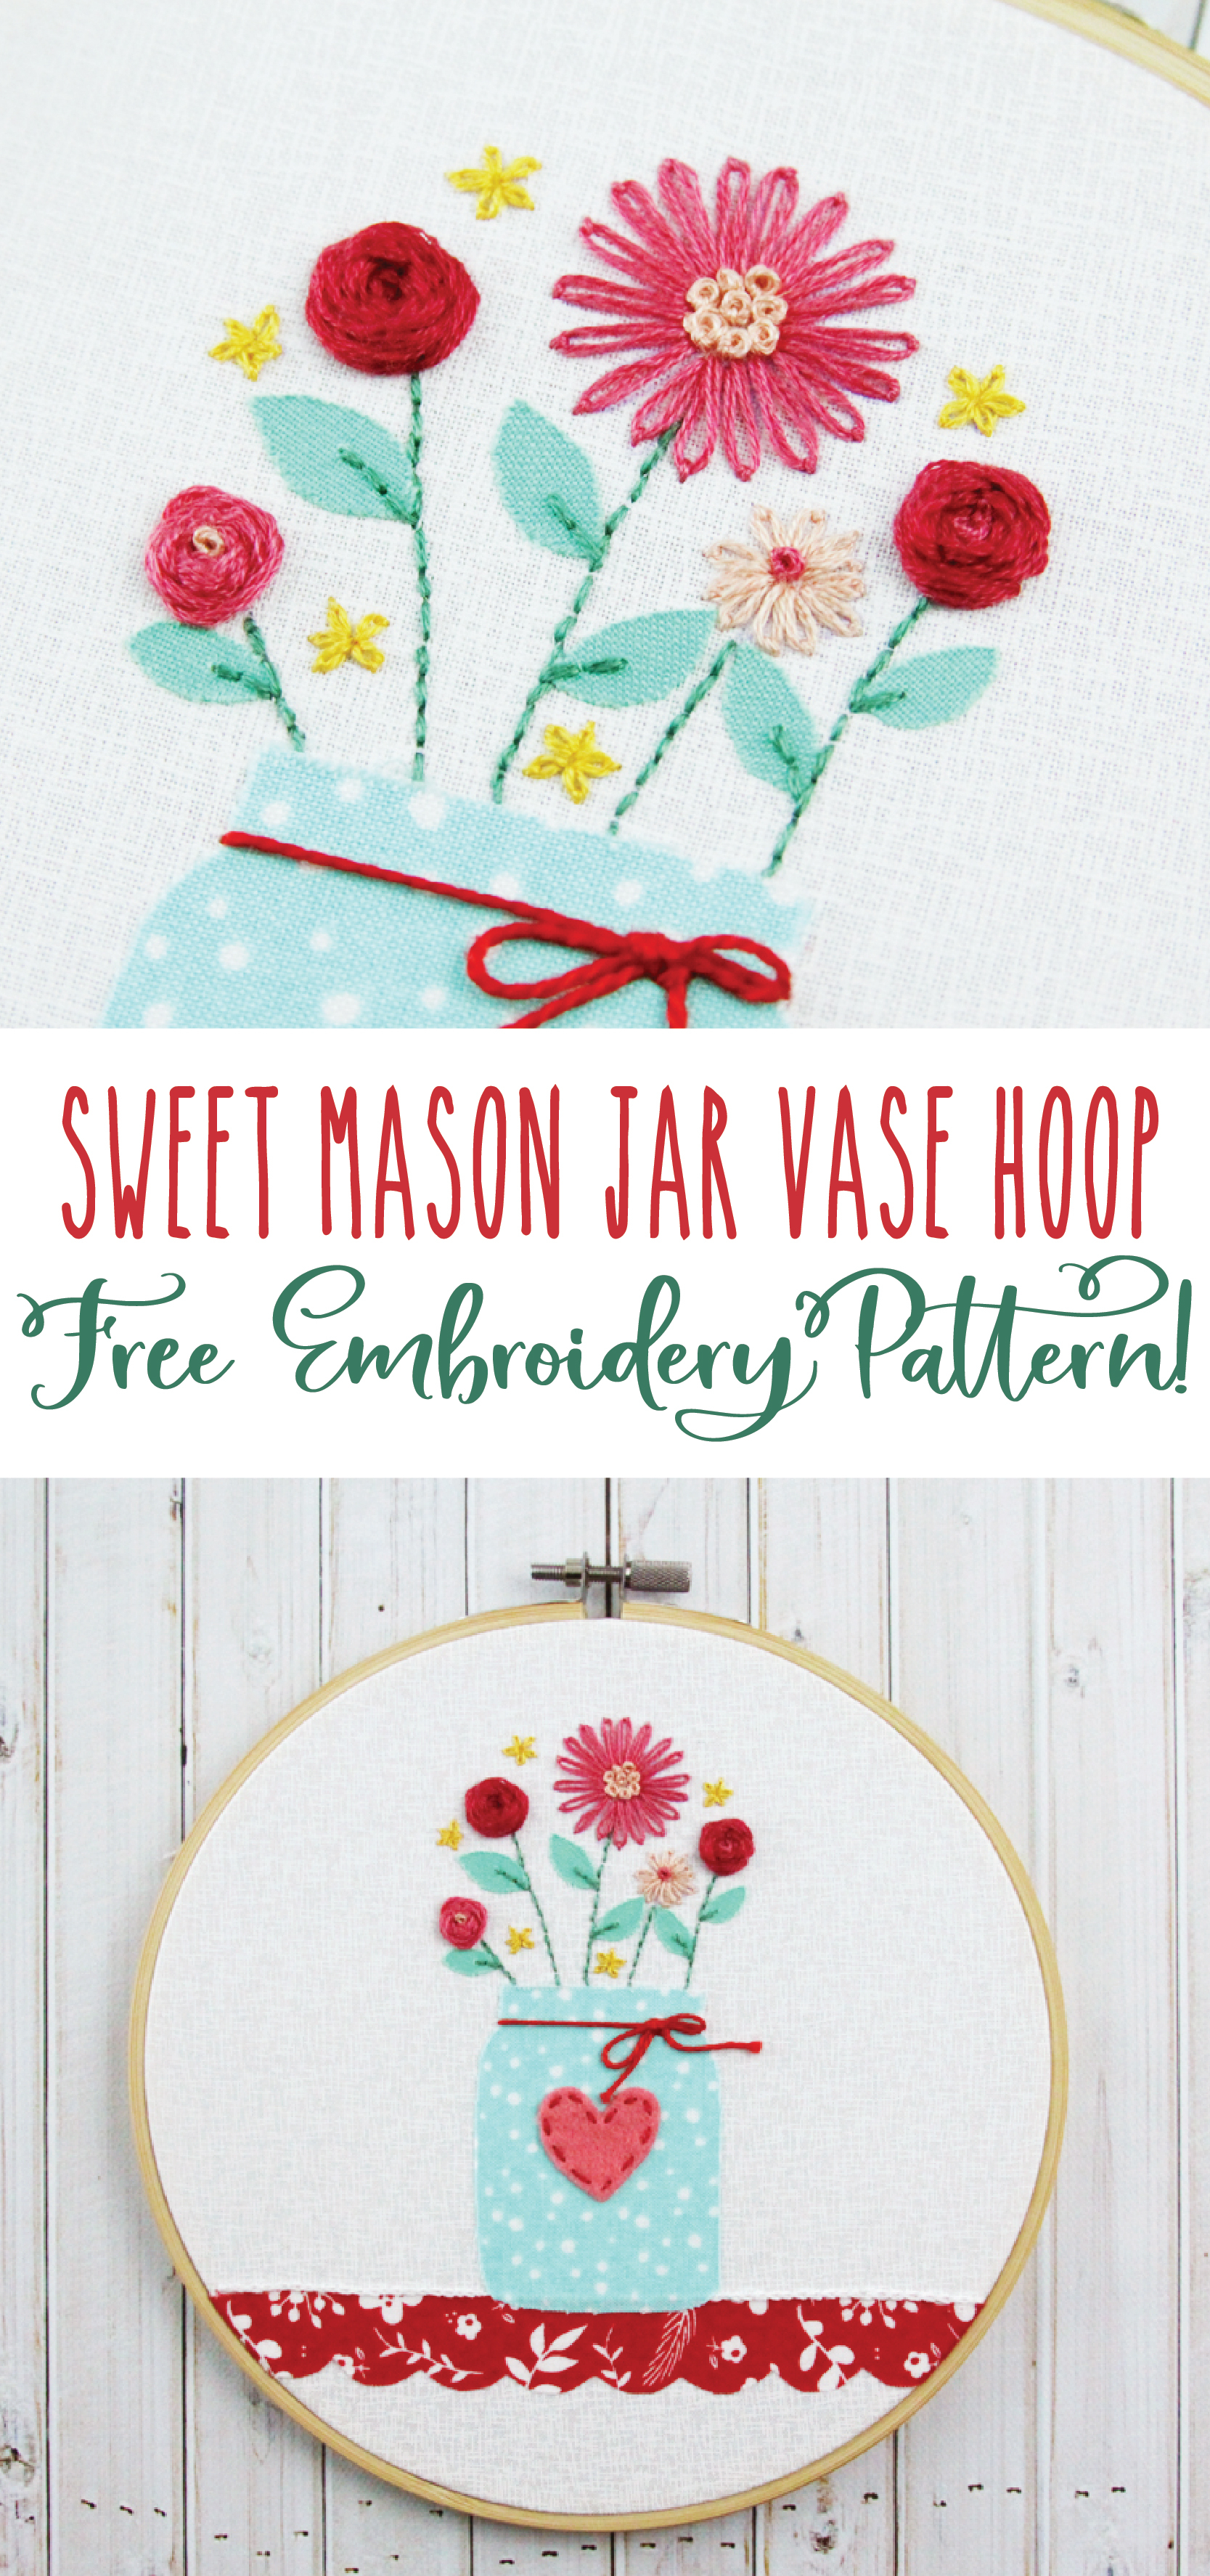 How To Make Your Own Embroidery Pattern Sweet Mason Jar Vase Hoop Free Embroidery Pattern